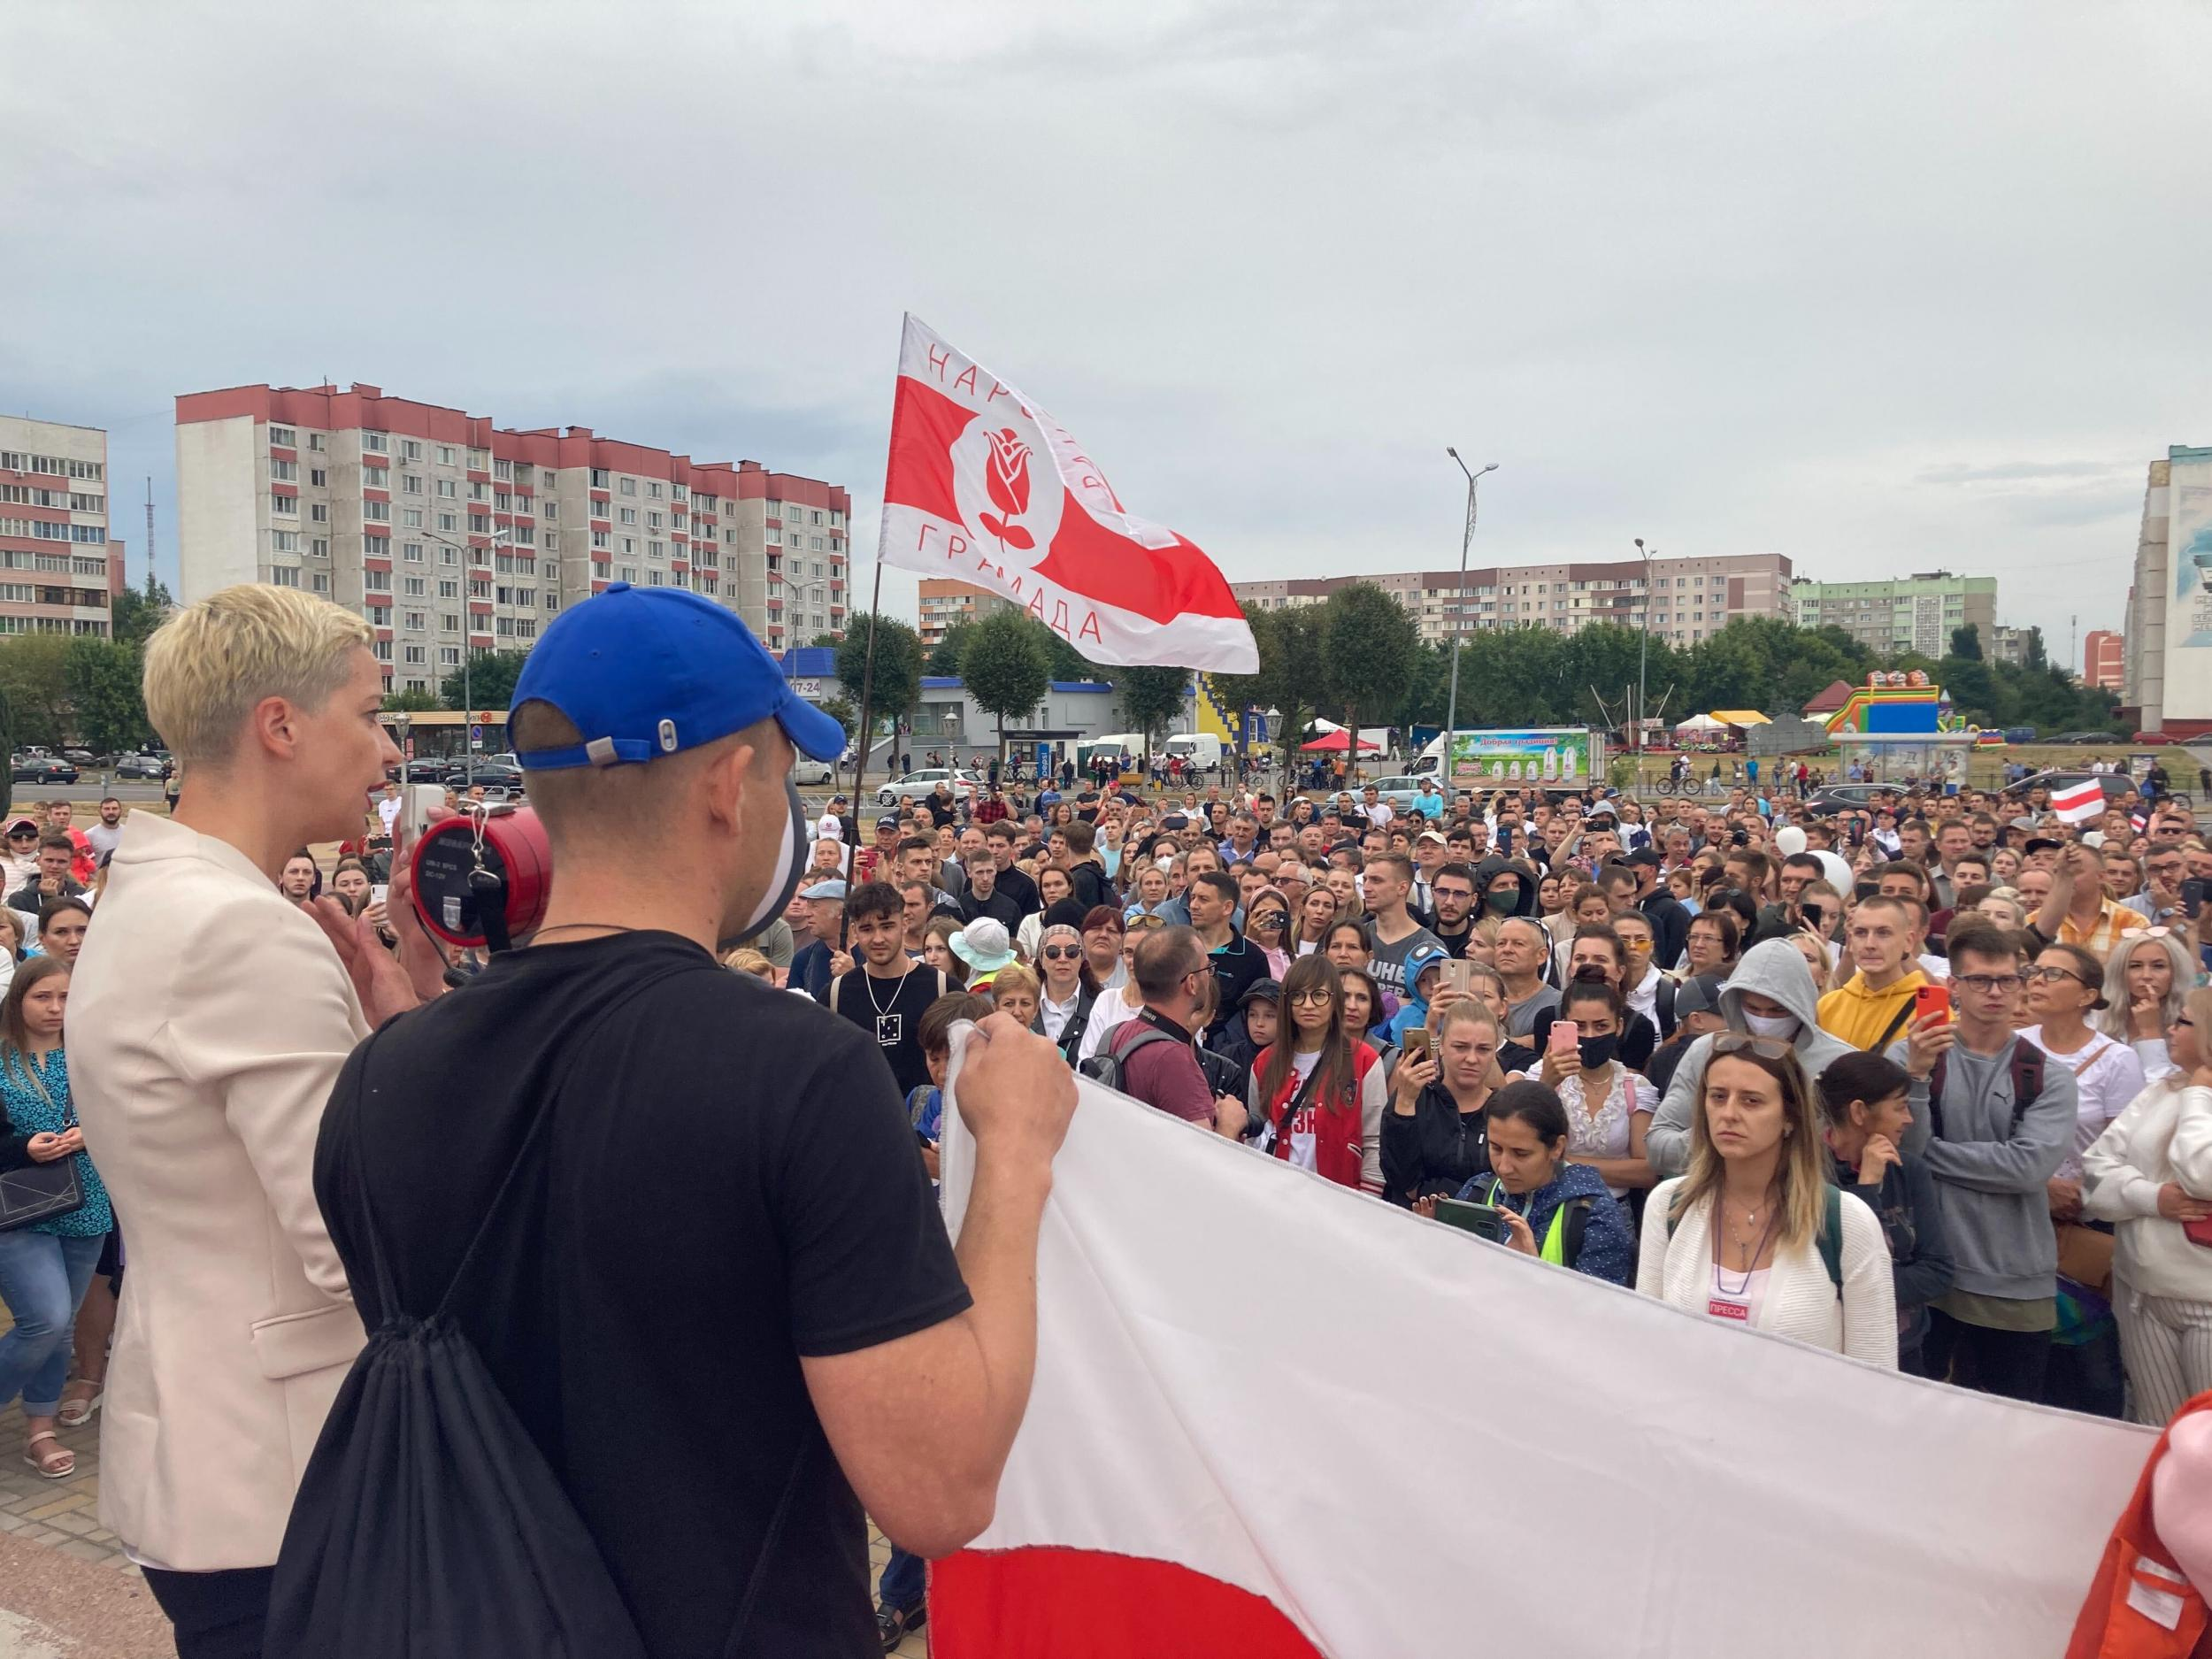 Belarusian protest leader Maria Kolesnikova says country must be prepared for the long game: 'Victory isn't coming tomorrow'